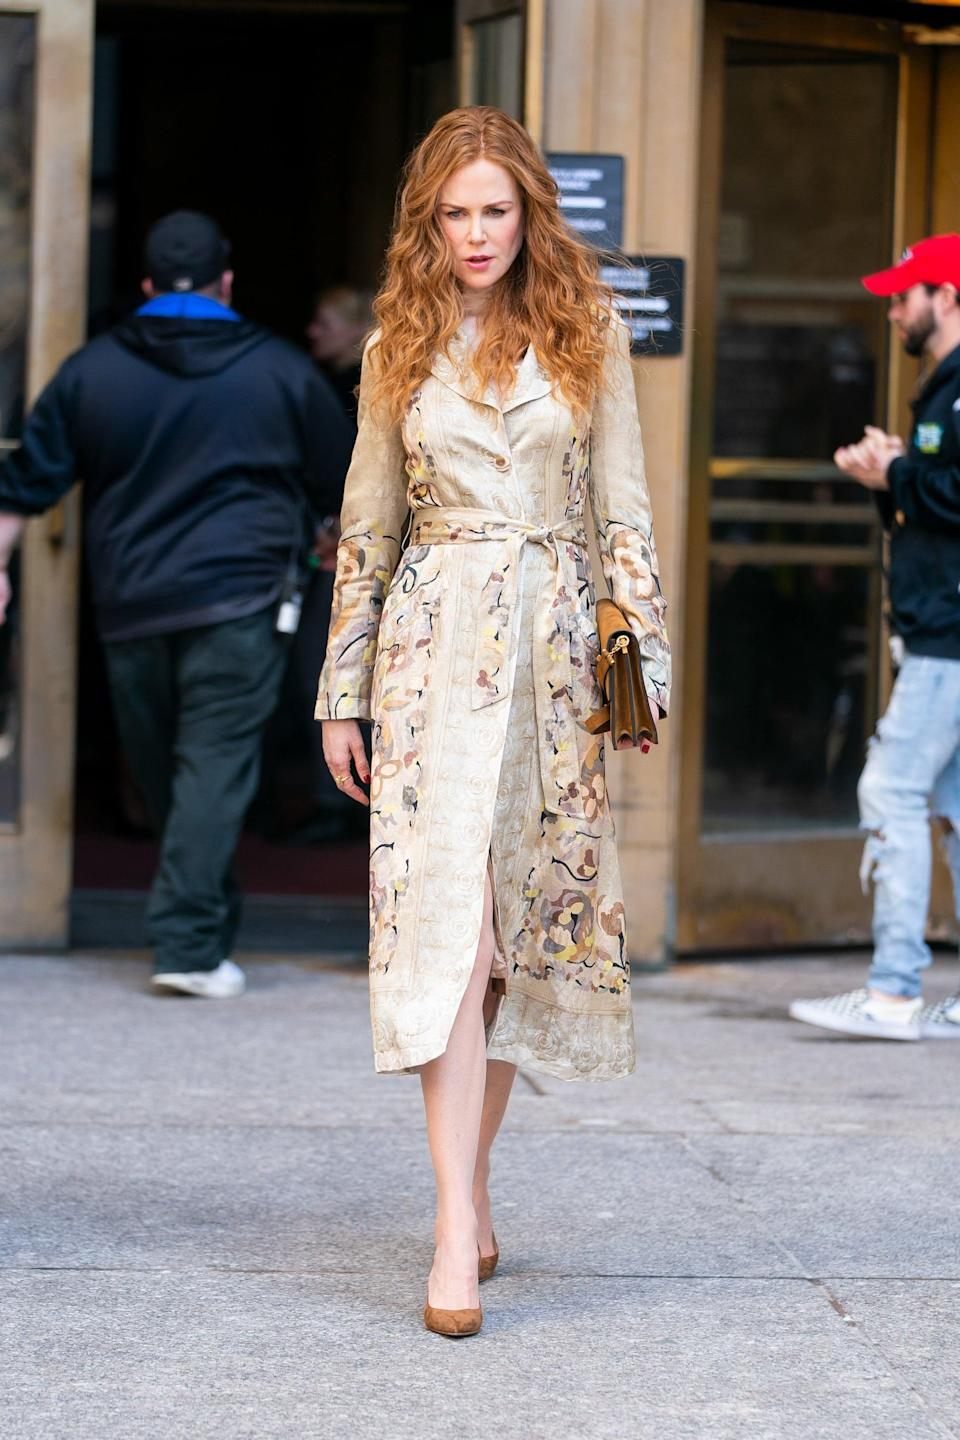 <p>This gorgeous embroidered Etro trench stands out among the sea of darker coats in Grace's collection. She wears it while heading to the court in episode five, likely to give off an air of innocence.</p>